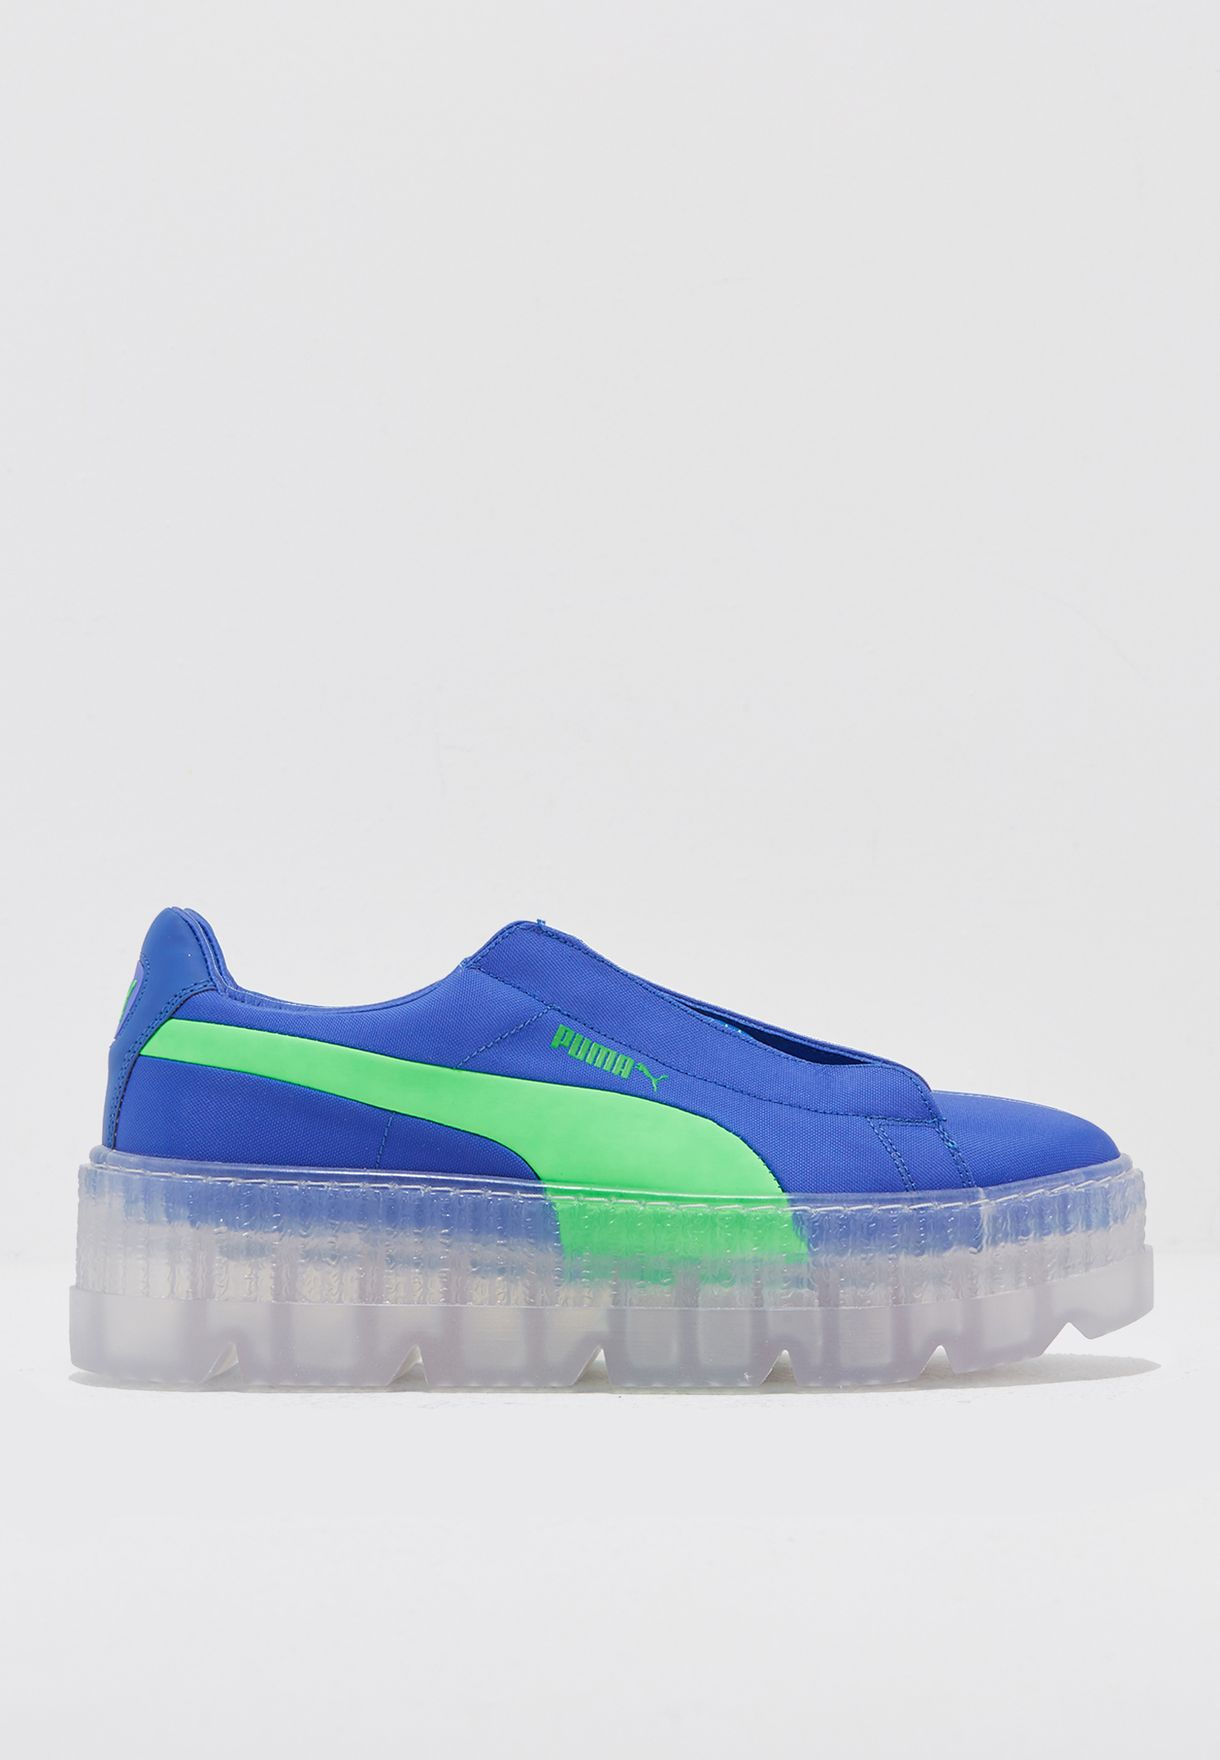 Shop PUMA x Fenty blue Surf Cleated Creeper 36768101 for Women in ... f9d97f4a5